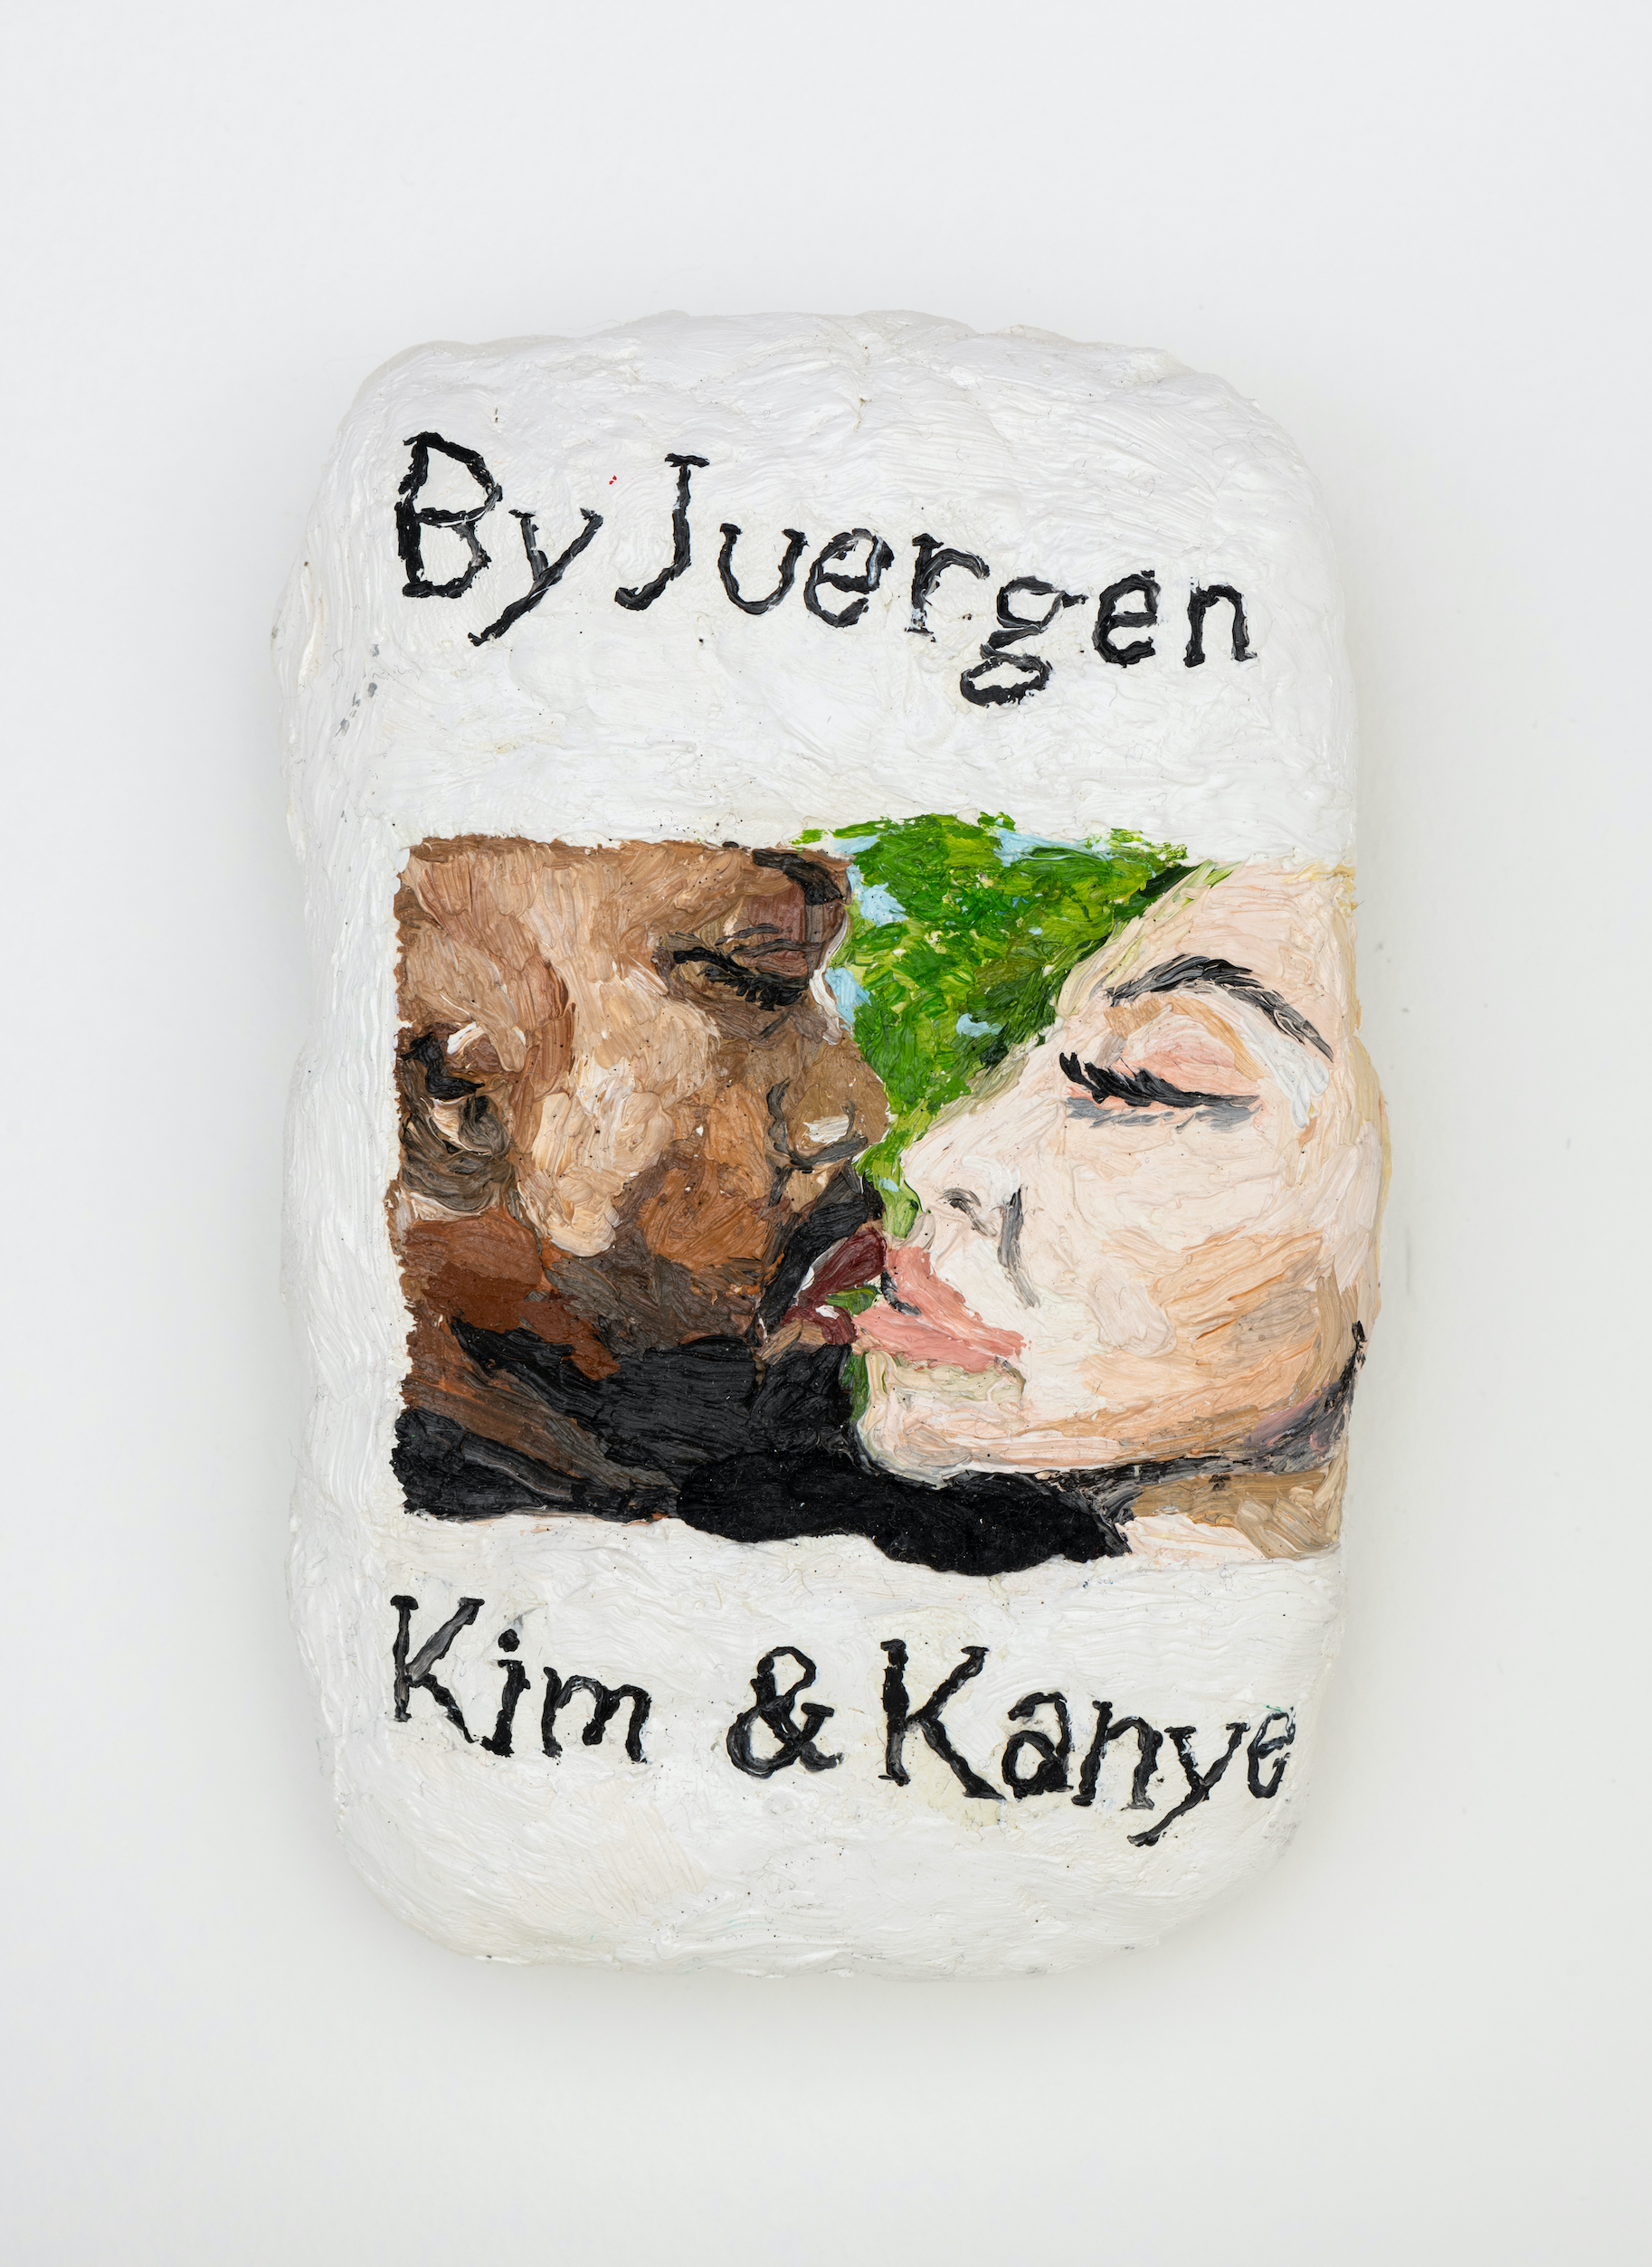 Sophie Barber Kim and Kanye kiss without tongues, 2021. Oil on canvas, 5 1⁄4 x 3 1⁄2 x 1 5⁄8 in (13.2 x 8.9 x 4 cm)